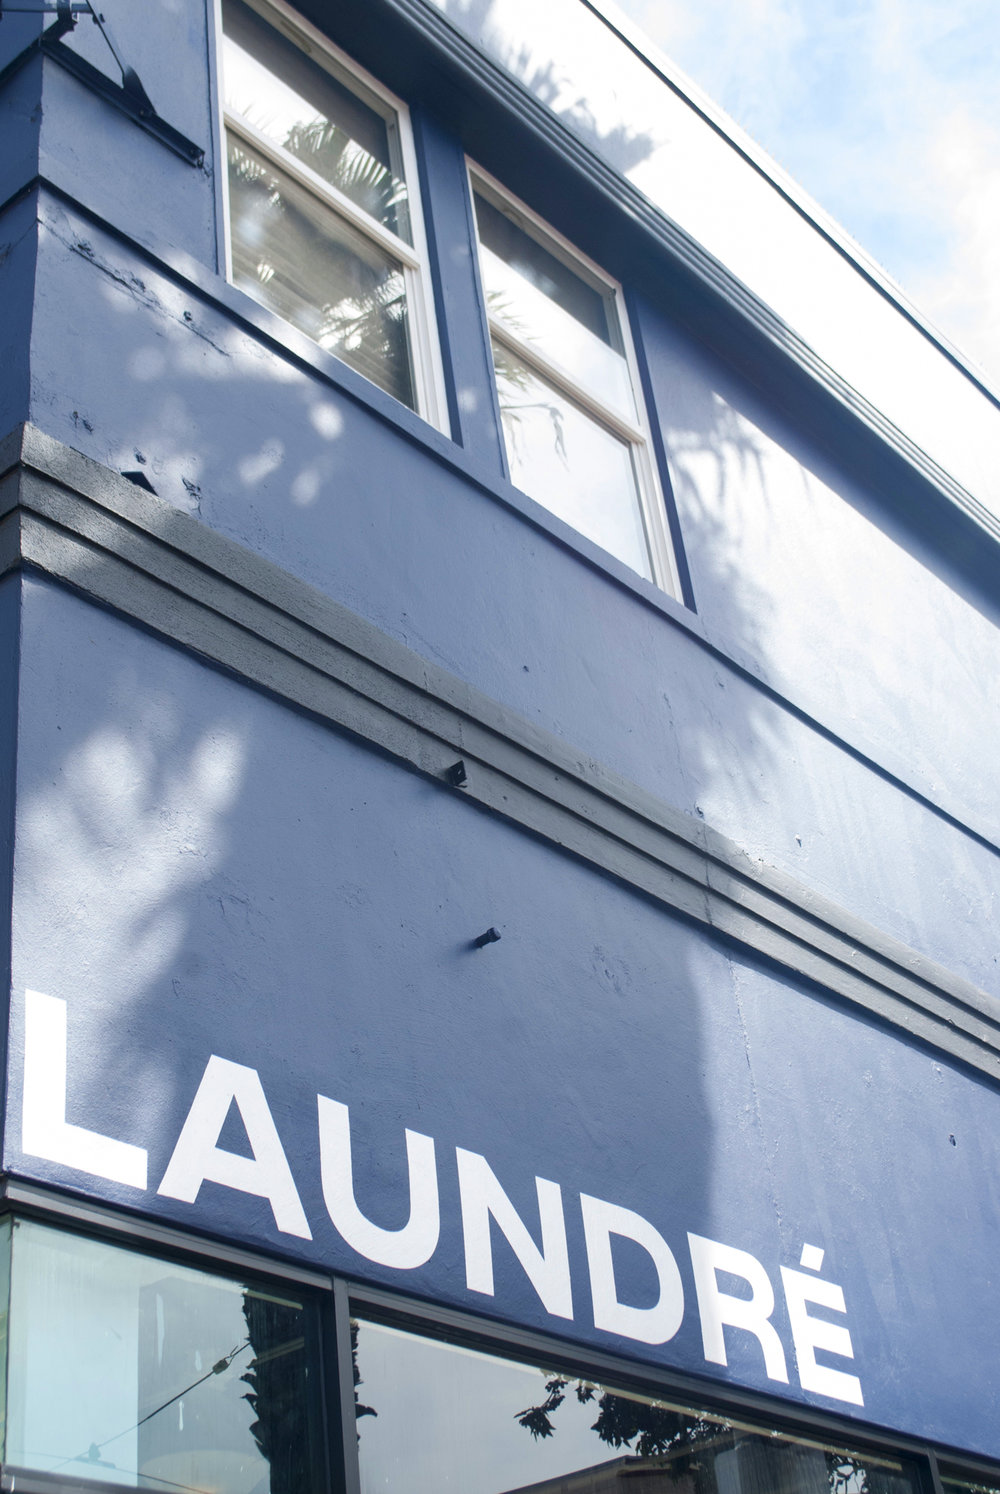 The outside facade of Laundre on Mission St.